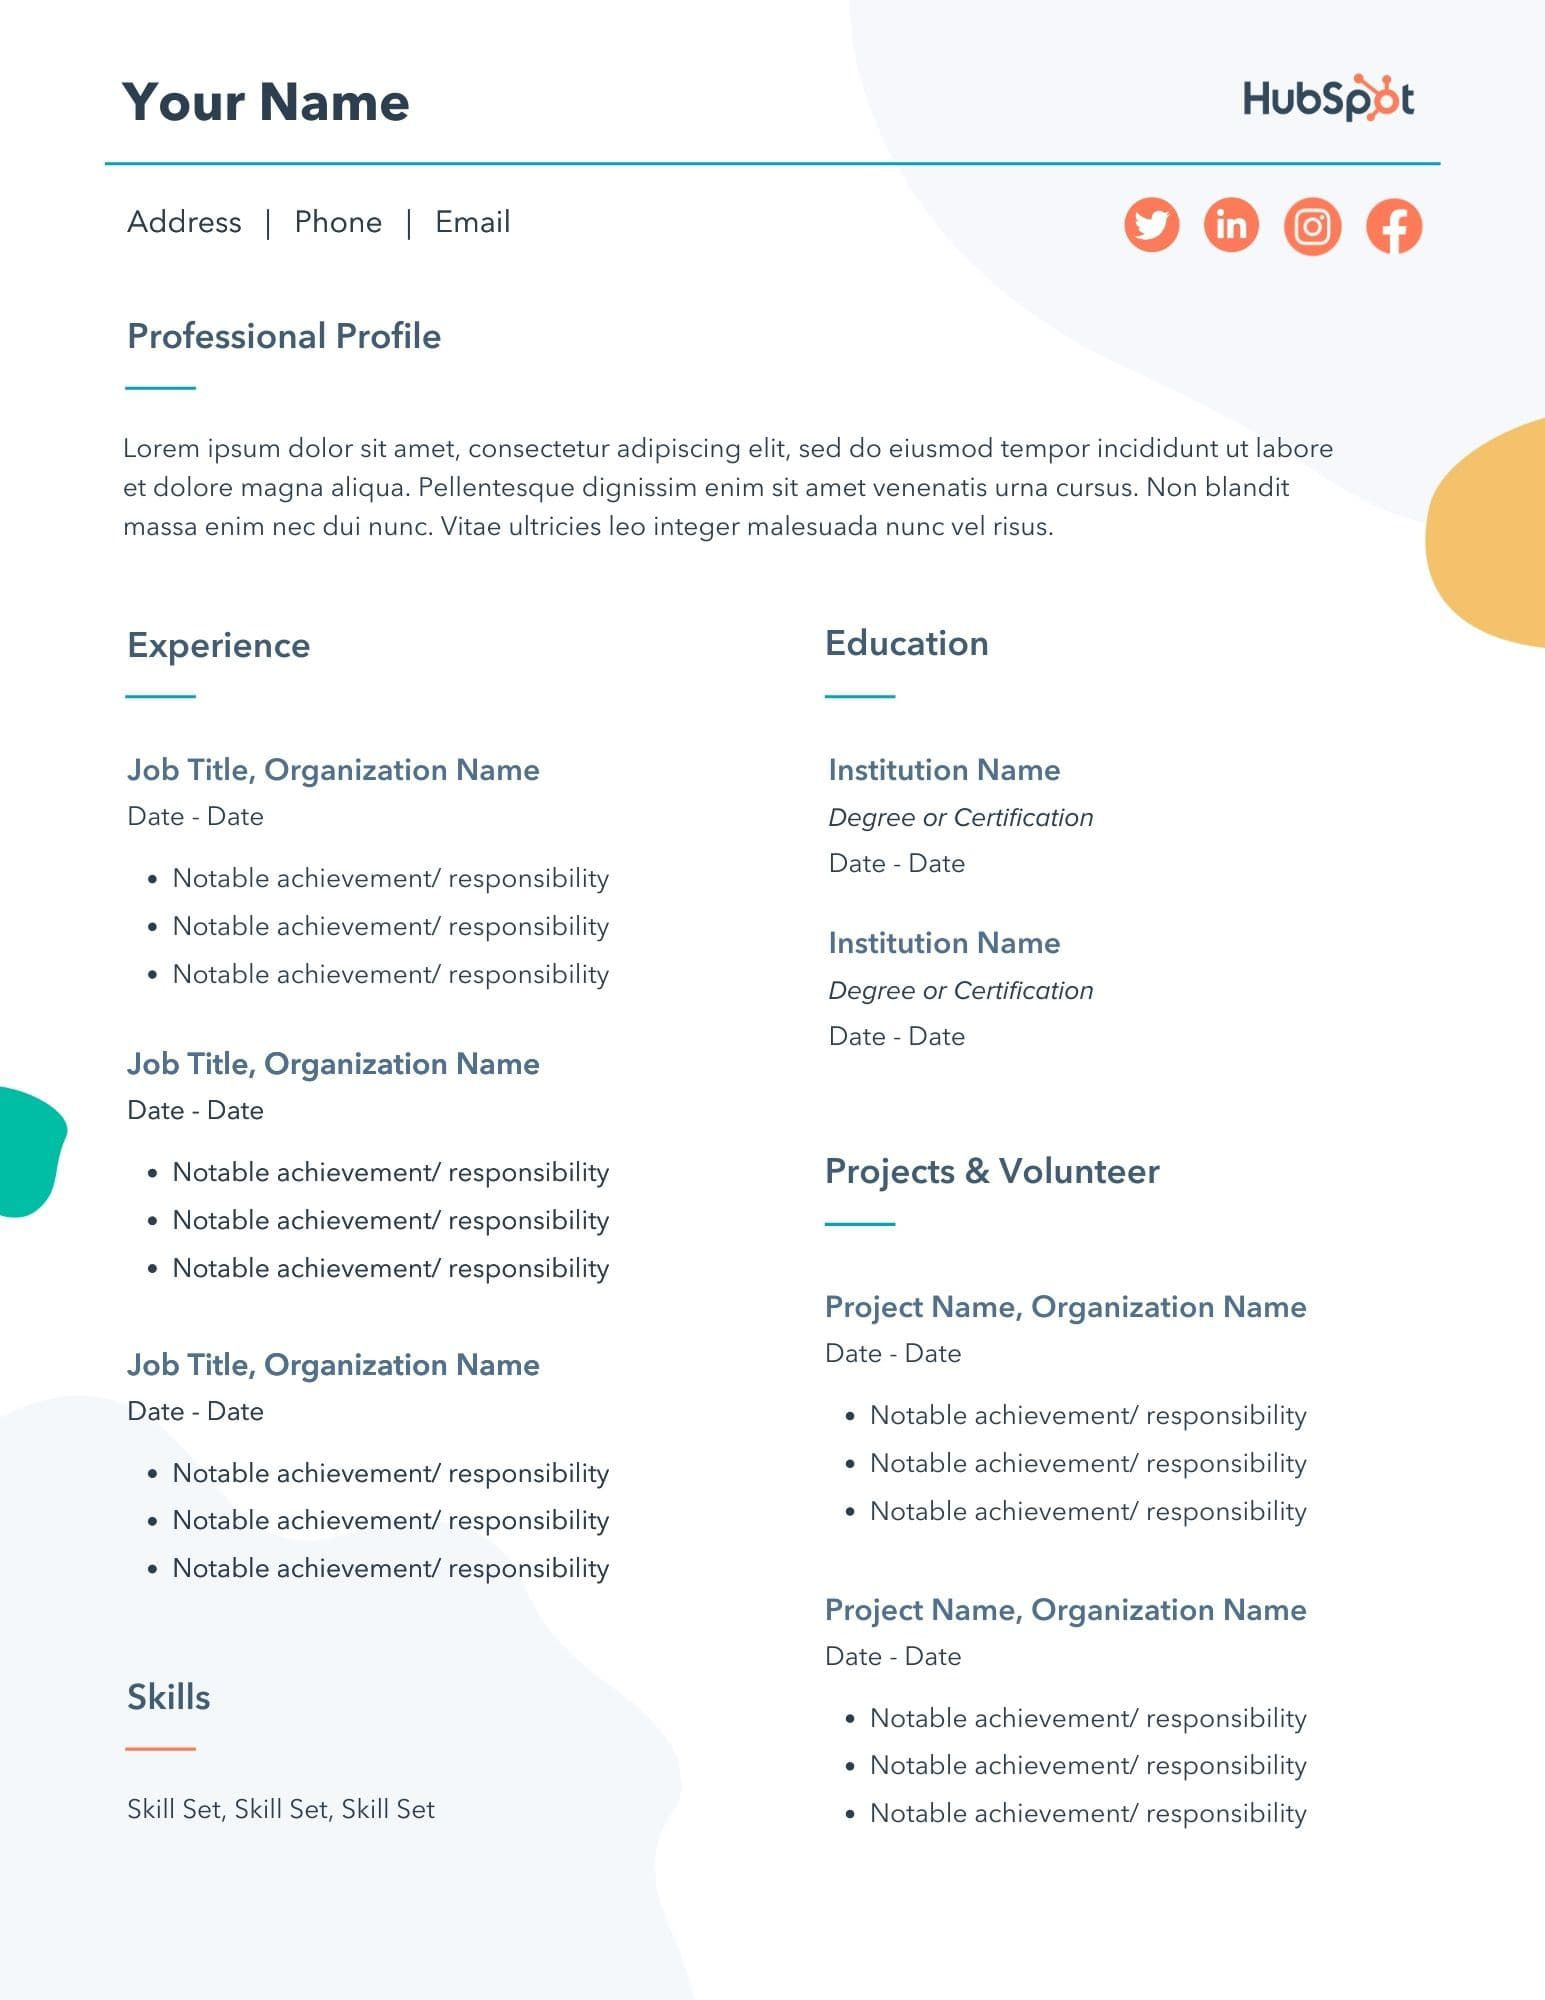 004 Top Resume Template For First Job Image  Free TeenagerFull